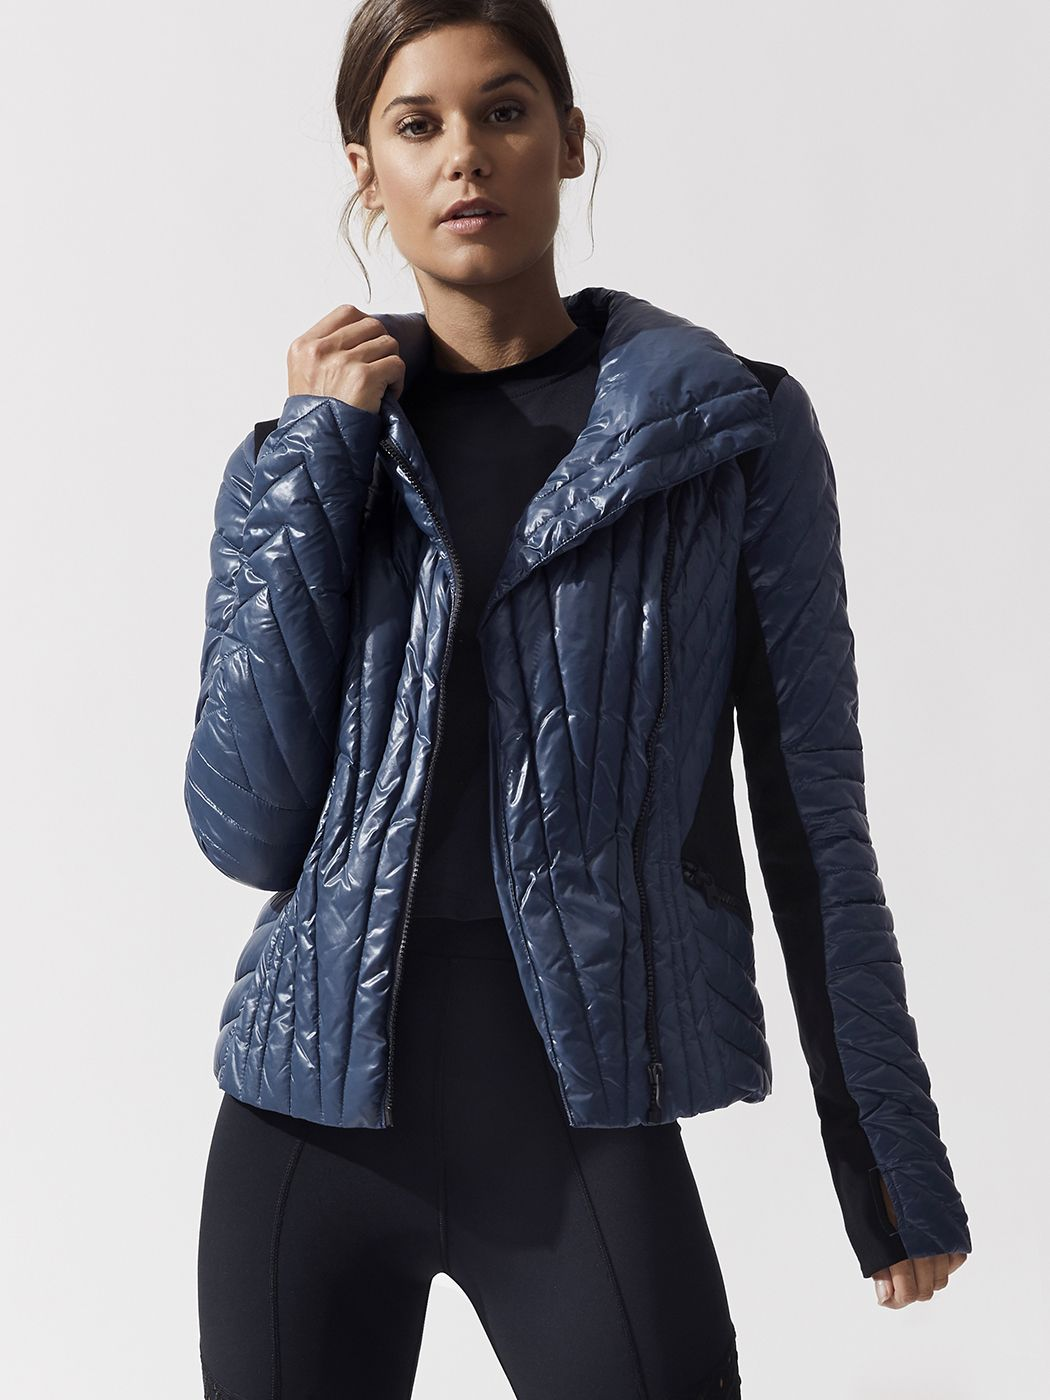 Motion Panel Puffer Jacket In Navy By Blanc Noir From Carbon38 Womens Activewear Jackets Puffer Jackets [ 1400 x 1050 Pixel ]